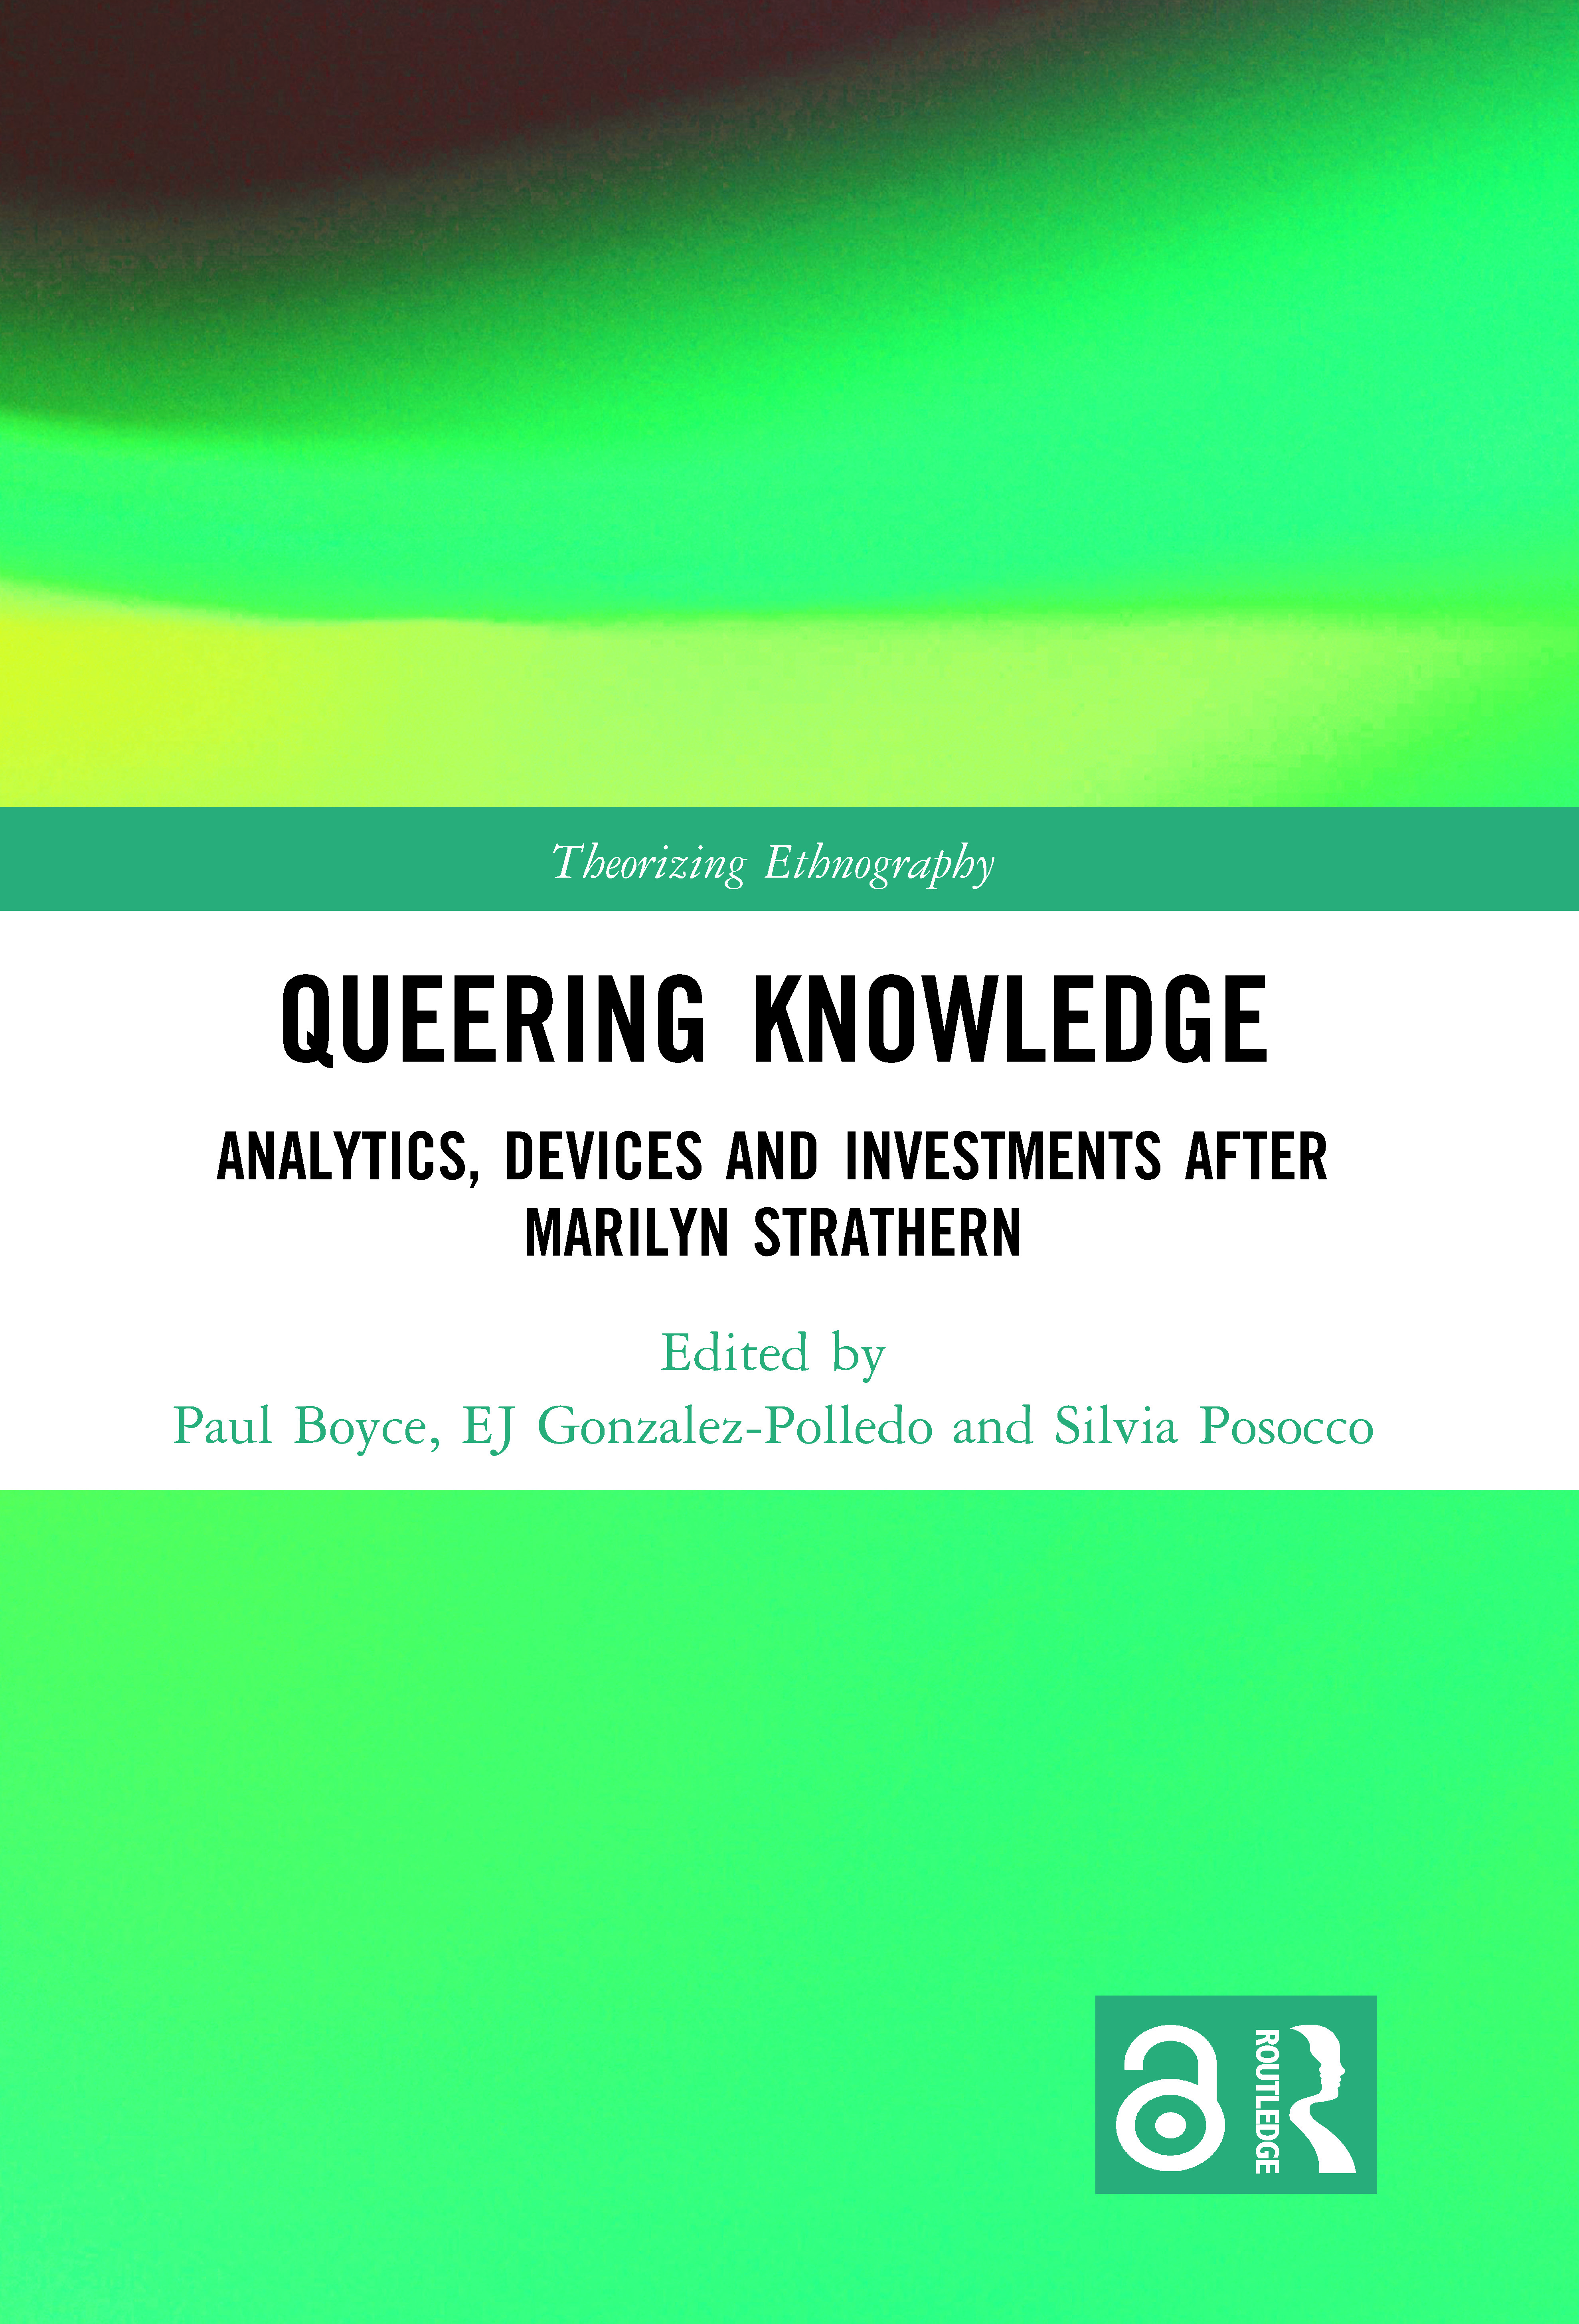 Queering Knowledge: Analytics, Devices, and Investments after Marilyn Strathern book cover